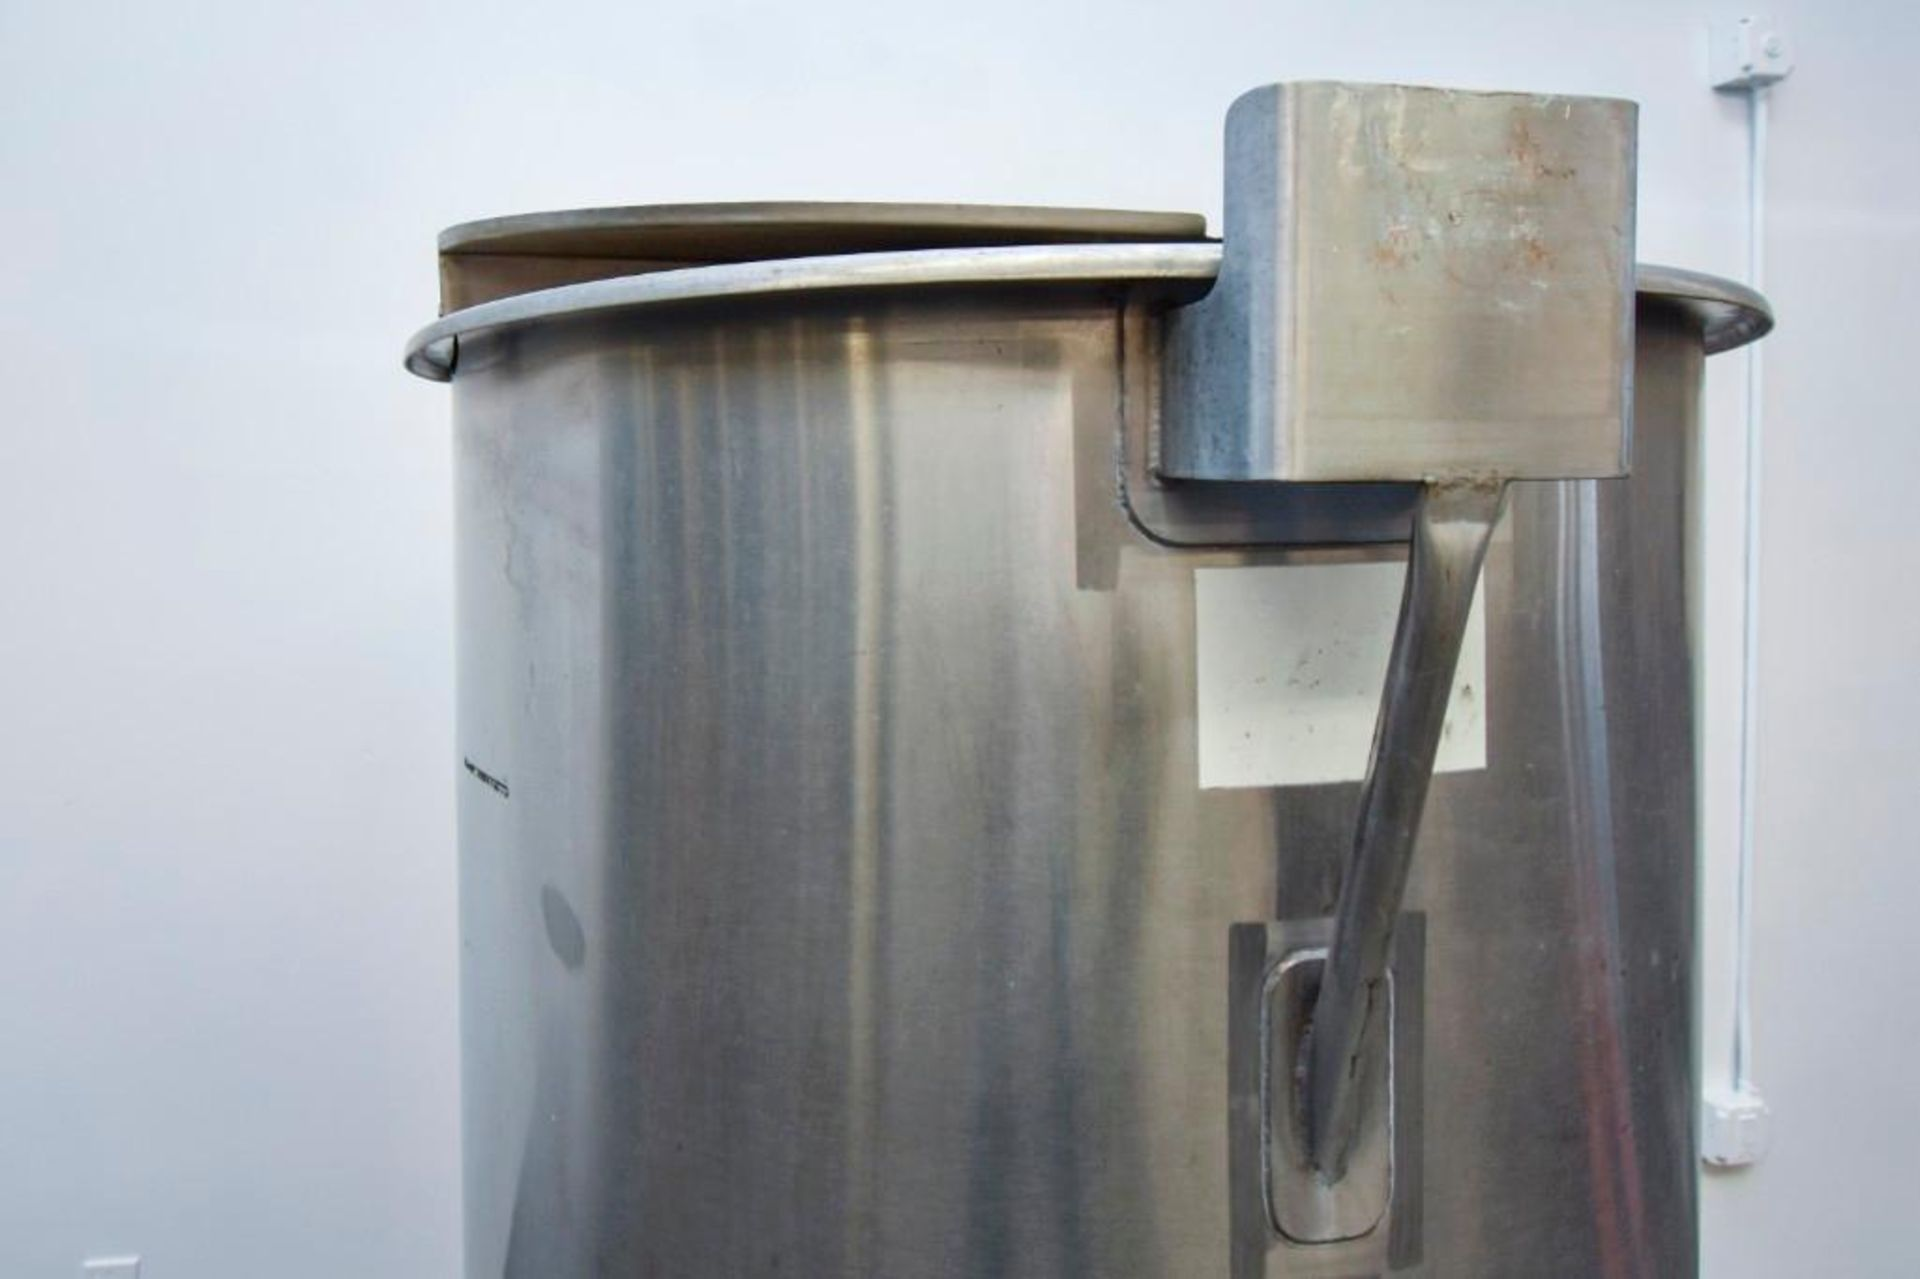 Stainless Steel Mixing/Holding Tank - Image 8 of 12